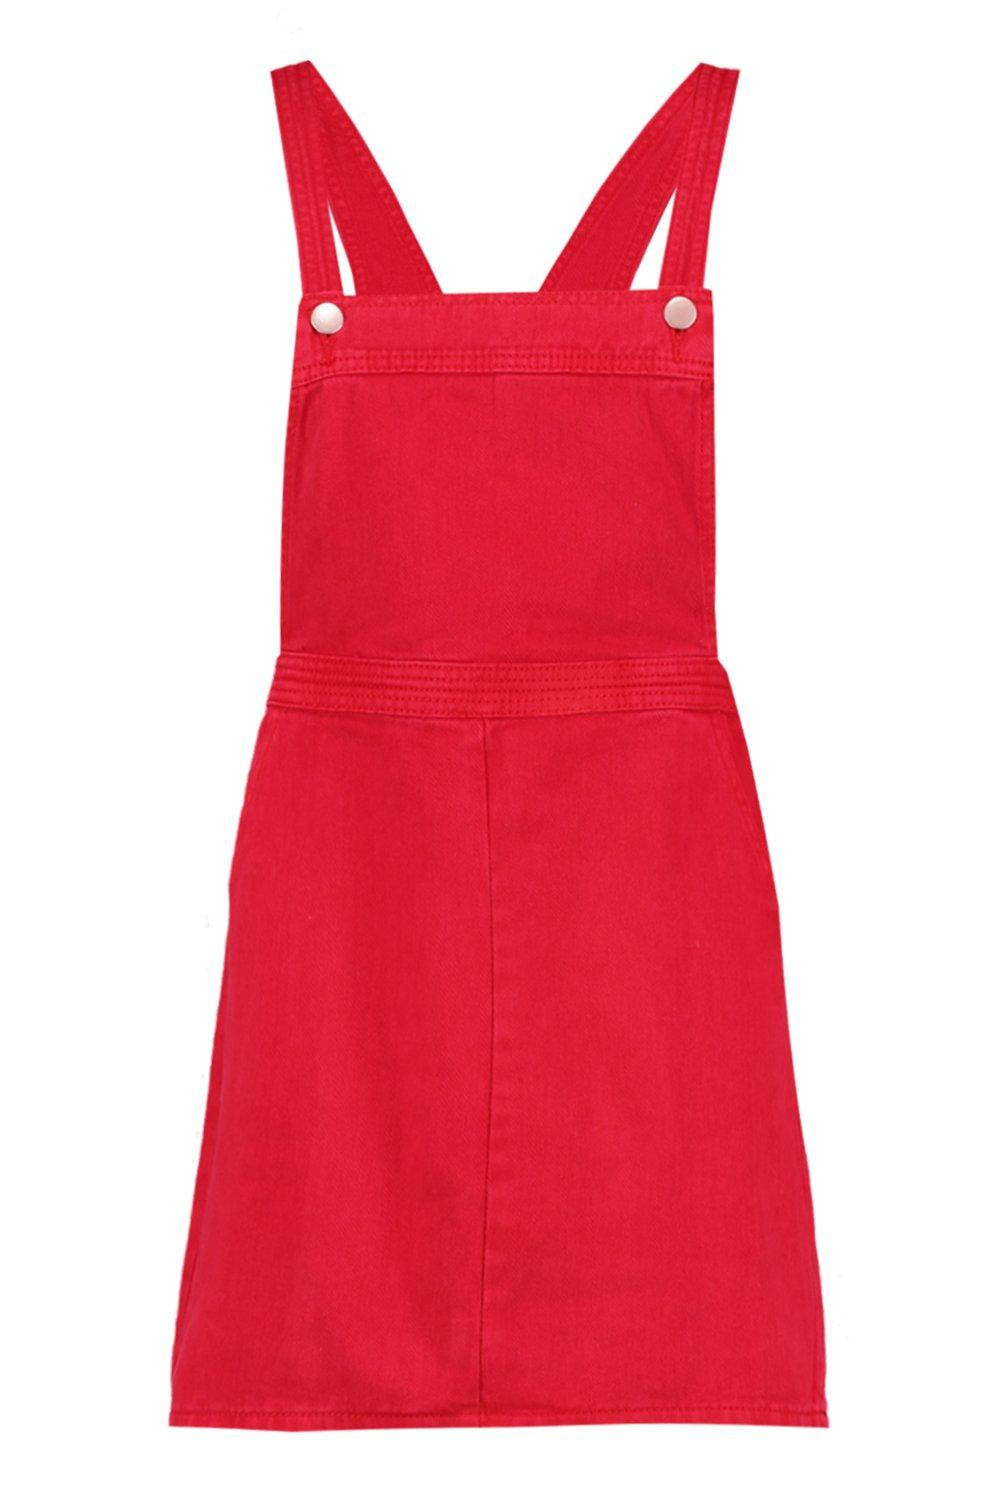 Pinafore red Denim Red Red Dress Pinafore Red Denim Dress red UAwPFc